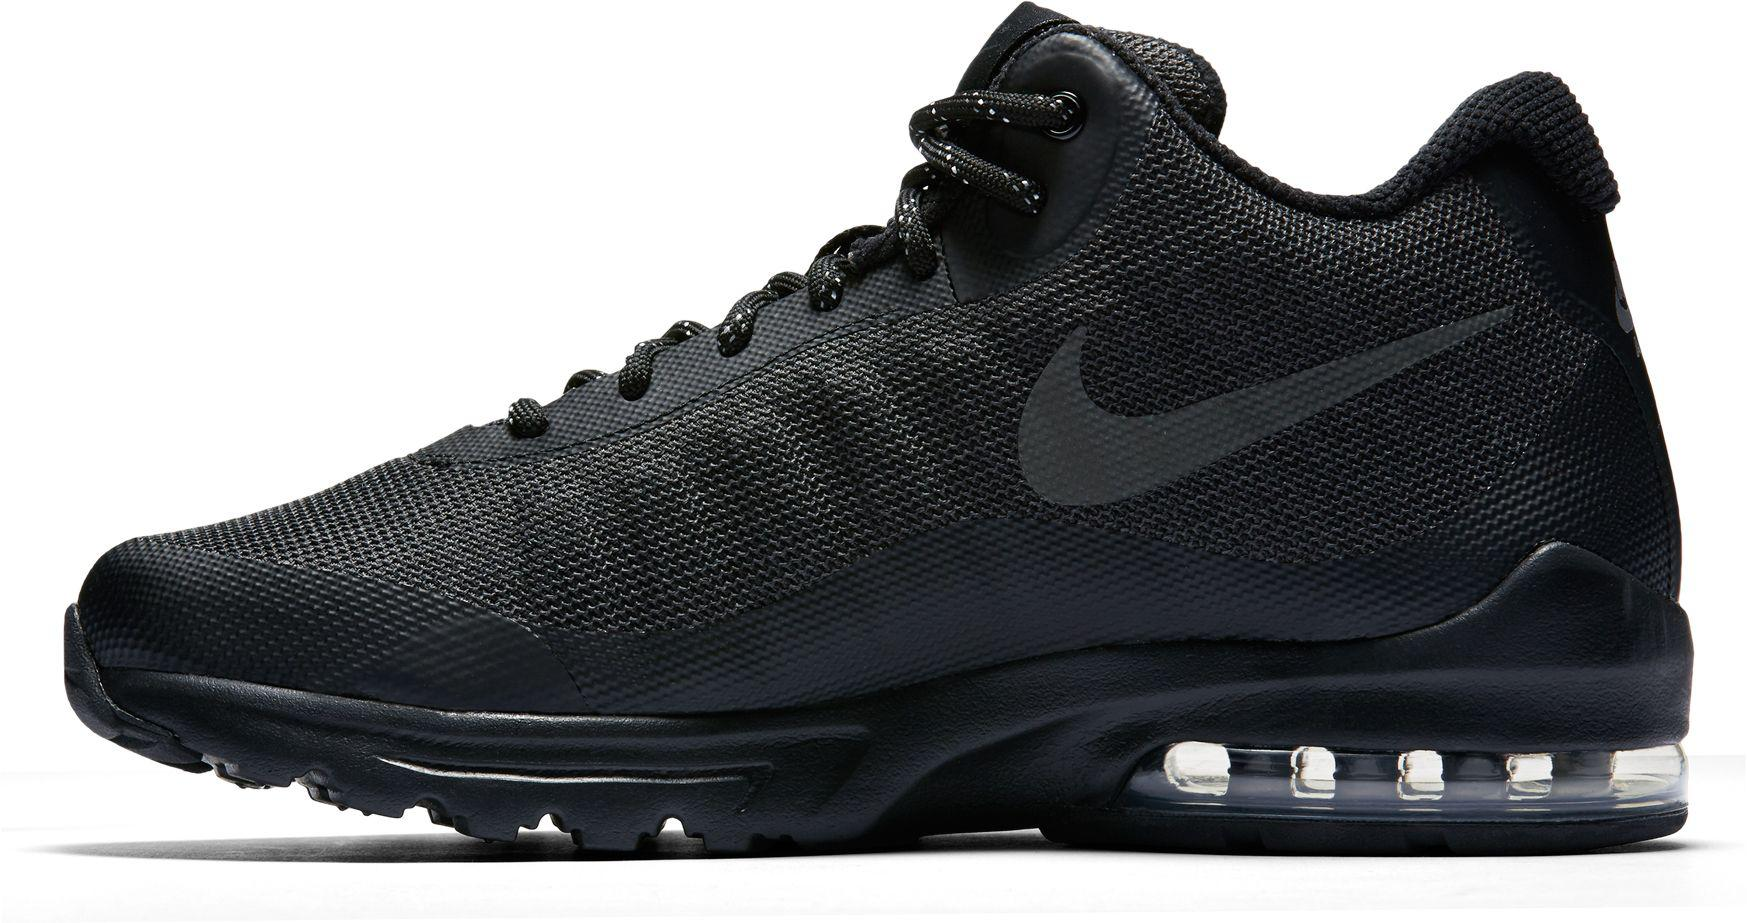 a03e82fc46 Nike Air Max Invigor Mid Shoes in Black for Men - Lyst